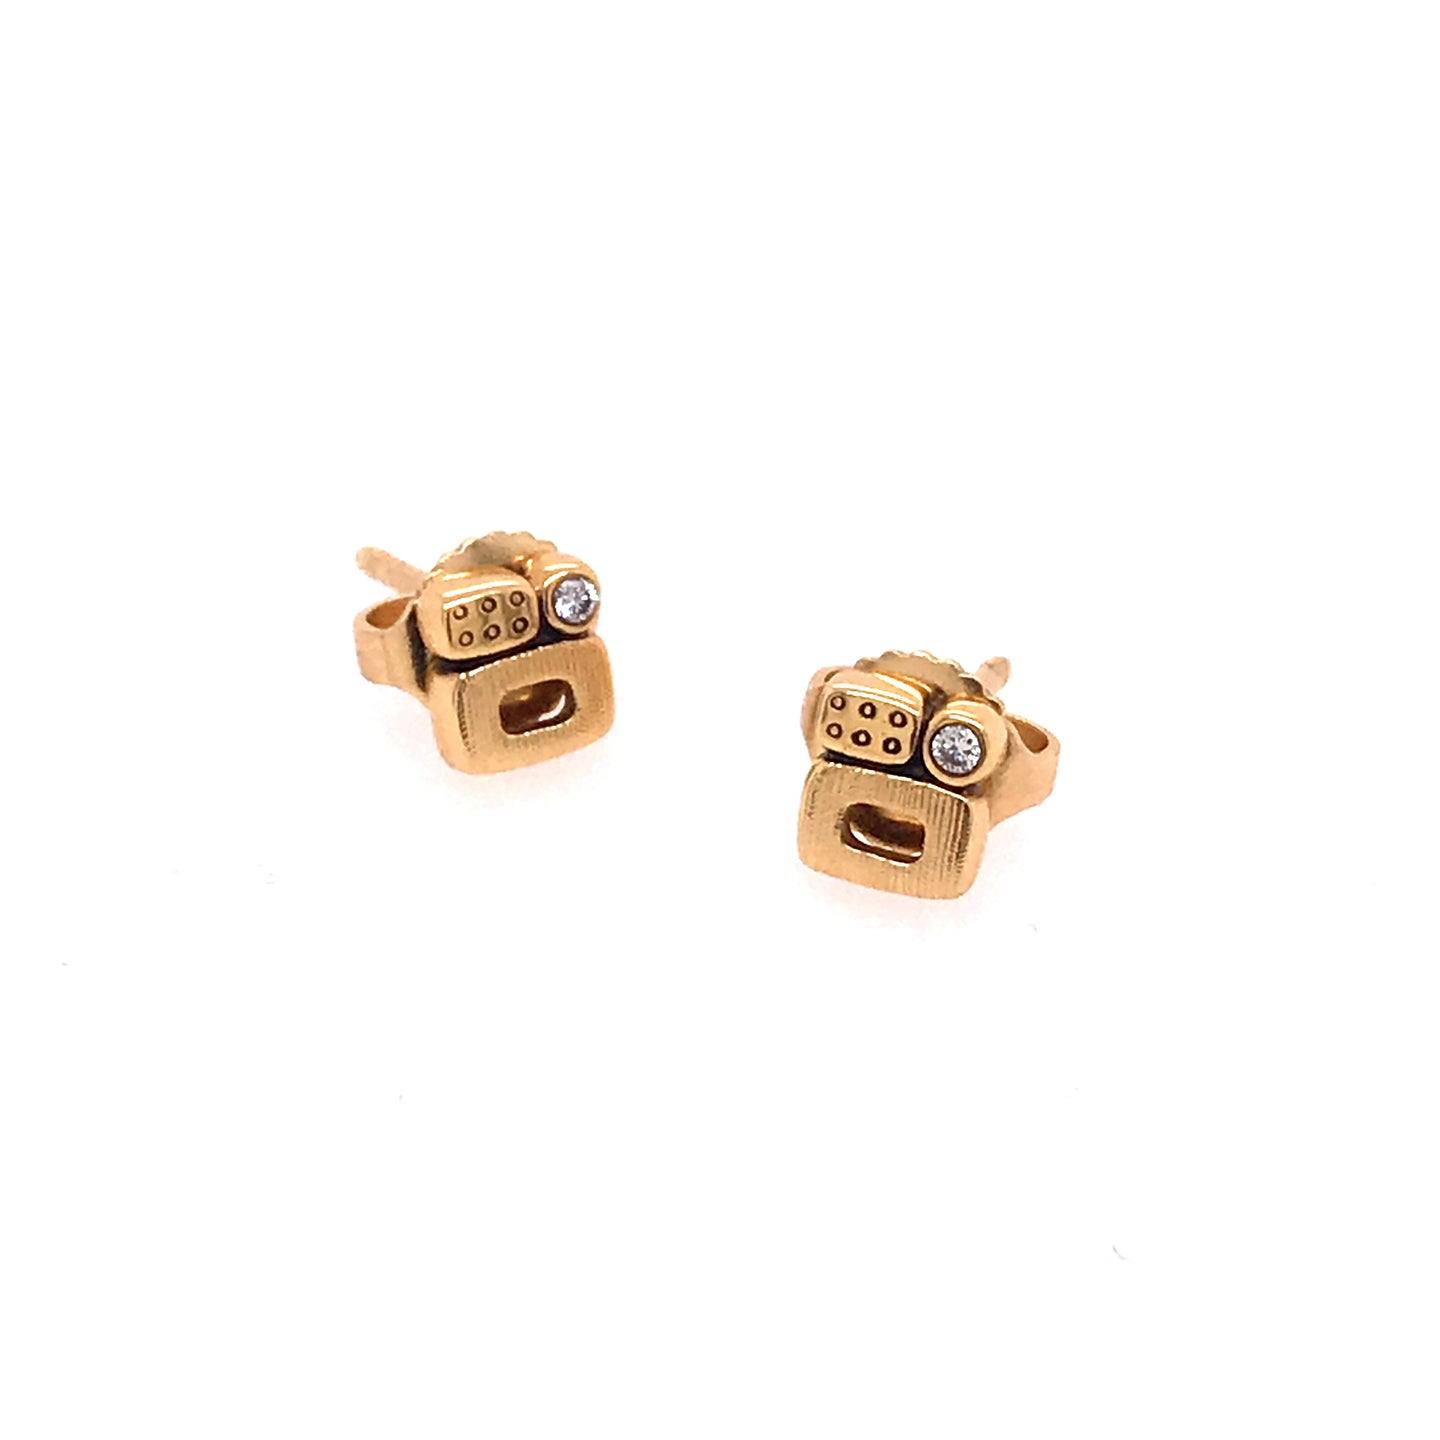 18kt Yellow Gold 'Little Windows' Stud Earrings